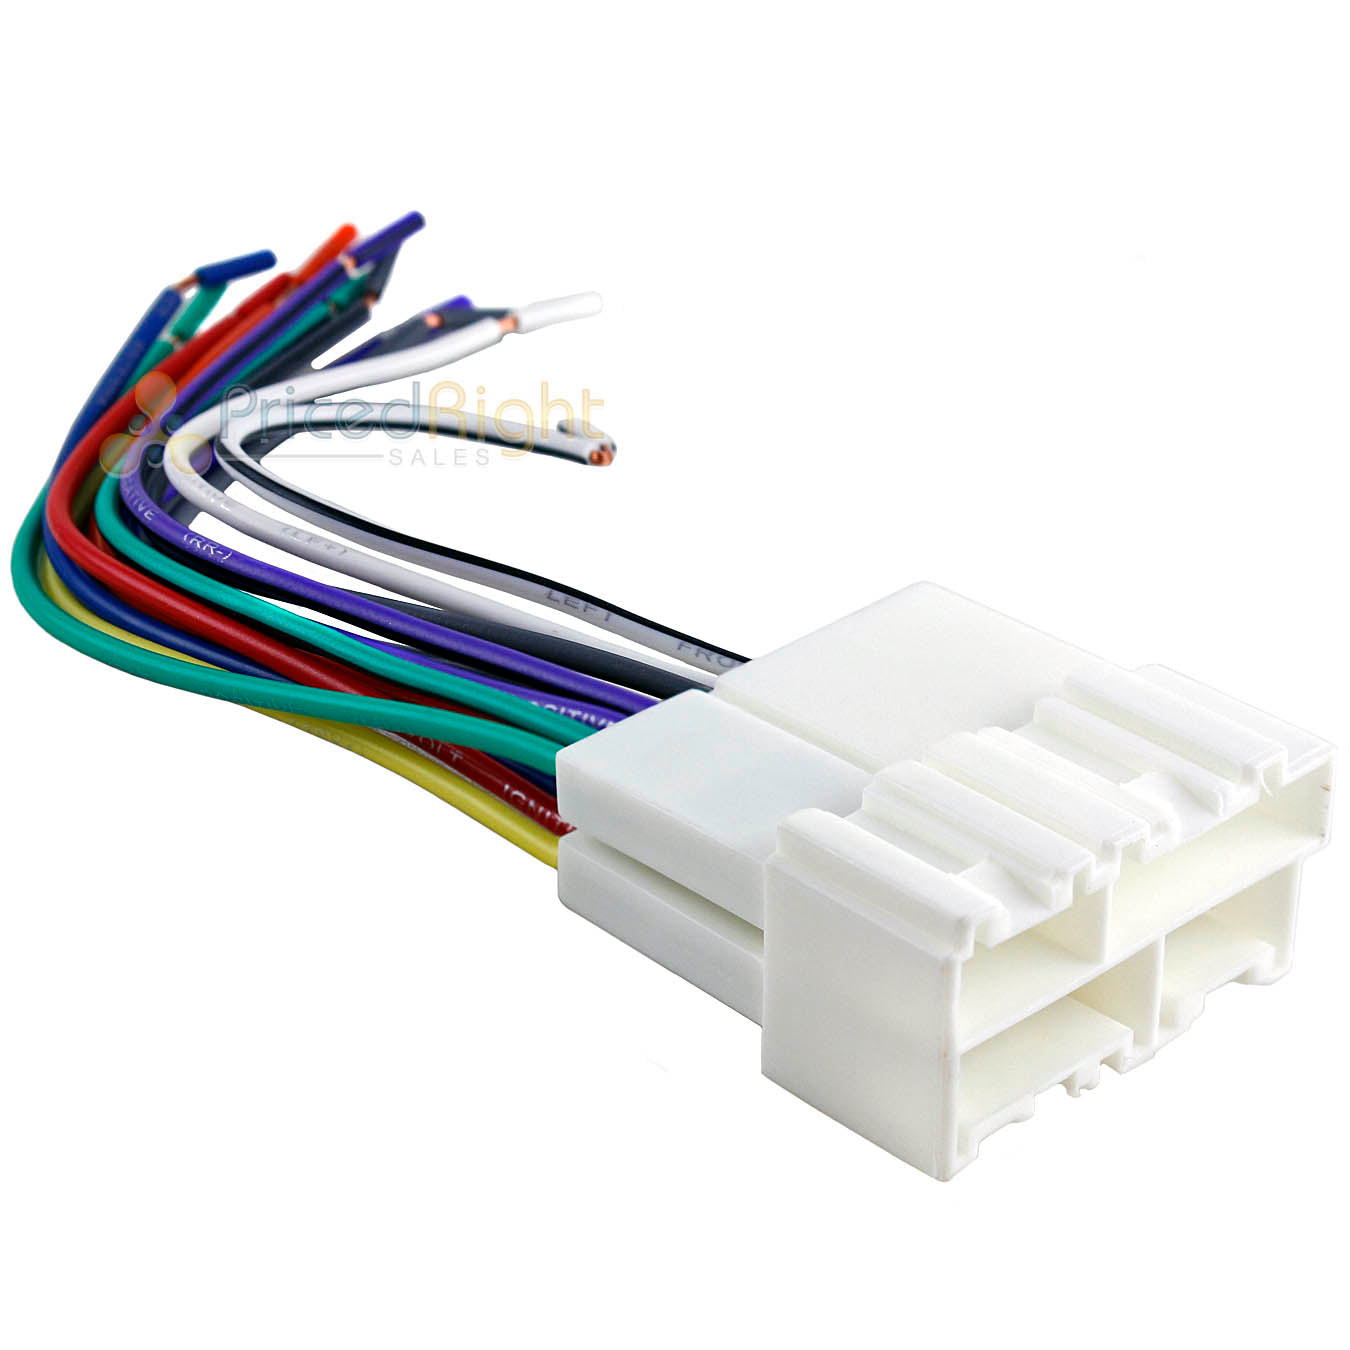 [SCHEMATICS_4HG]  Scosche Gm02b Wire Harness Fits 1988 to 2005 Gm Vehicles Car Stereo Wi –  Pricedrightsales | Scosche Wiring Harness Gm 2000 |  | Pricedrightsales